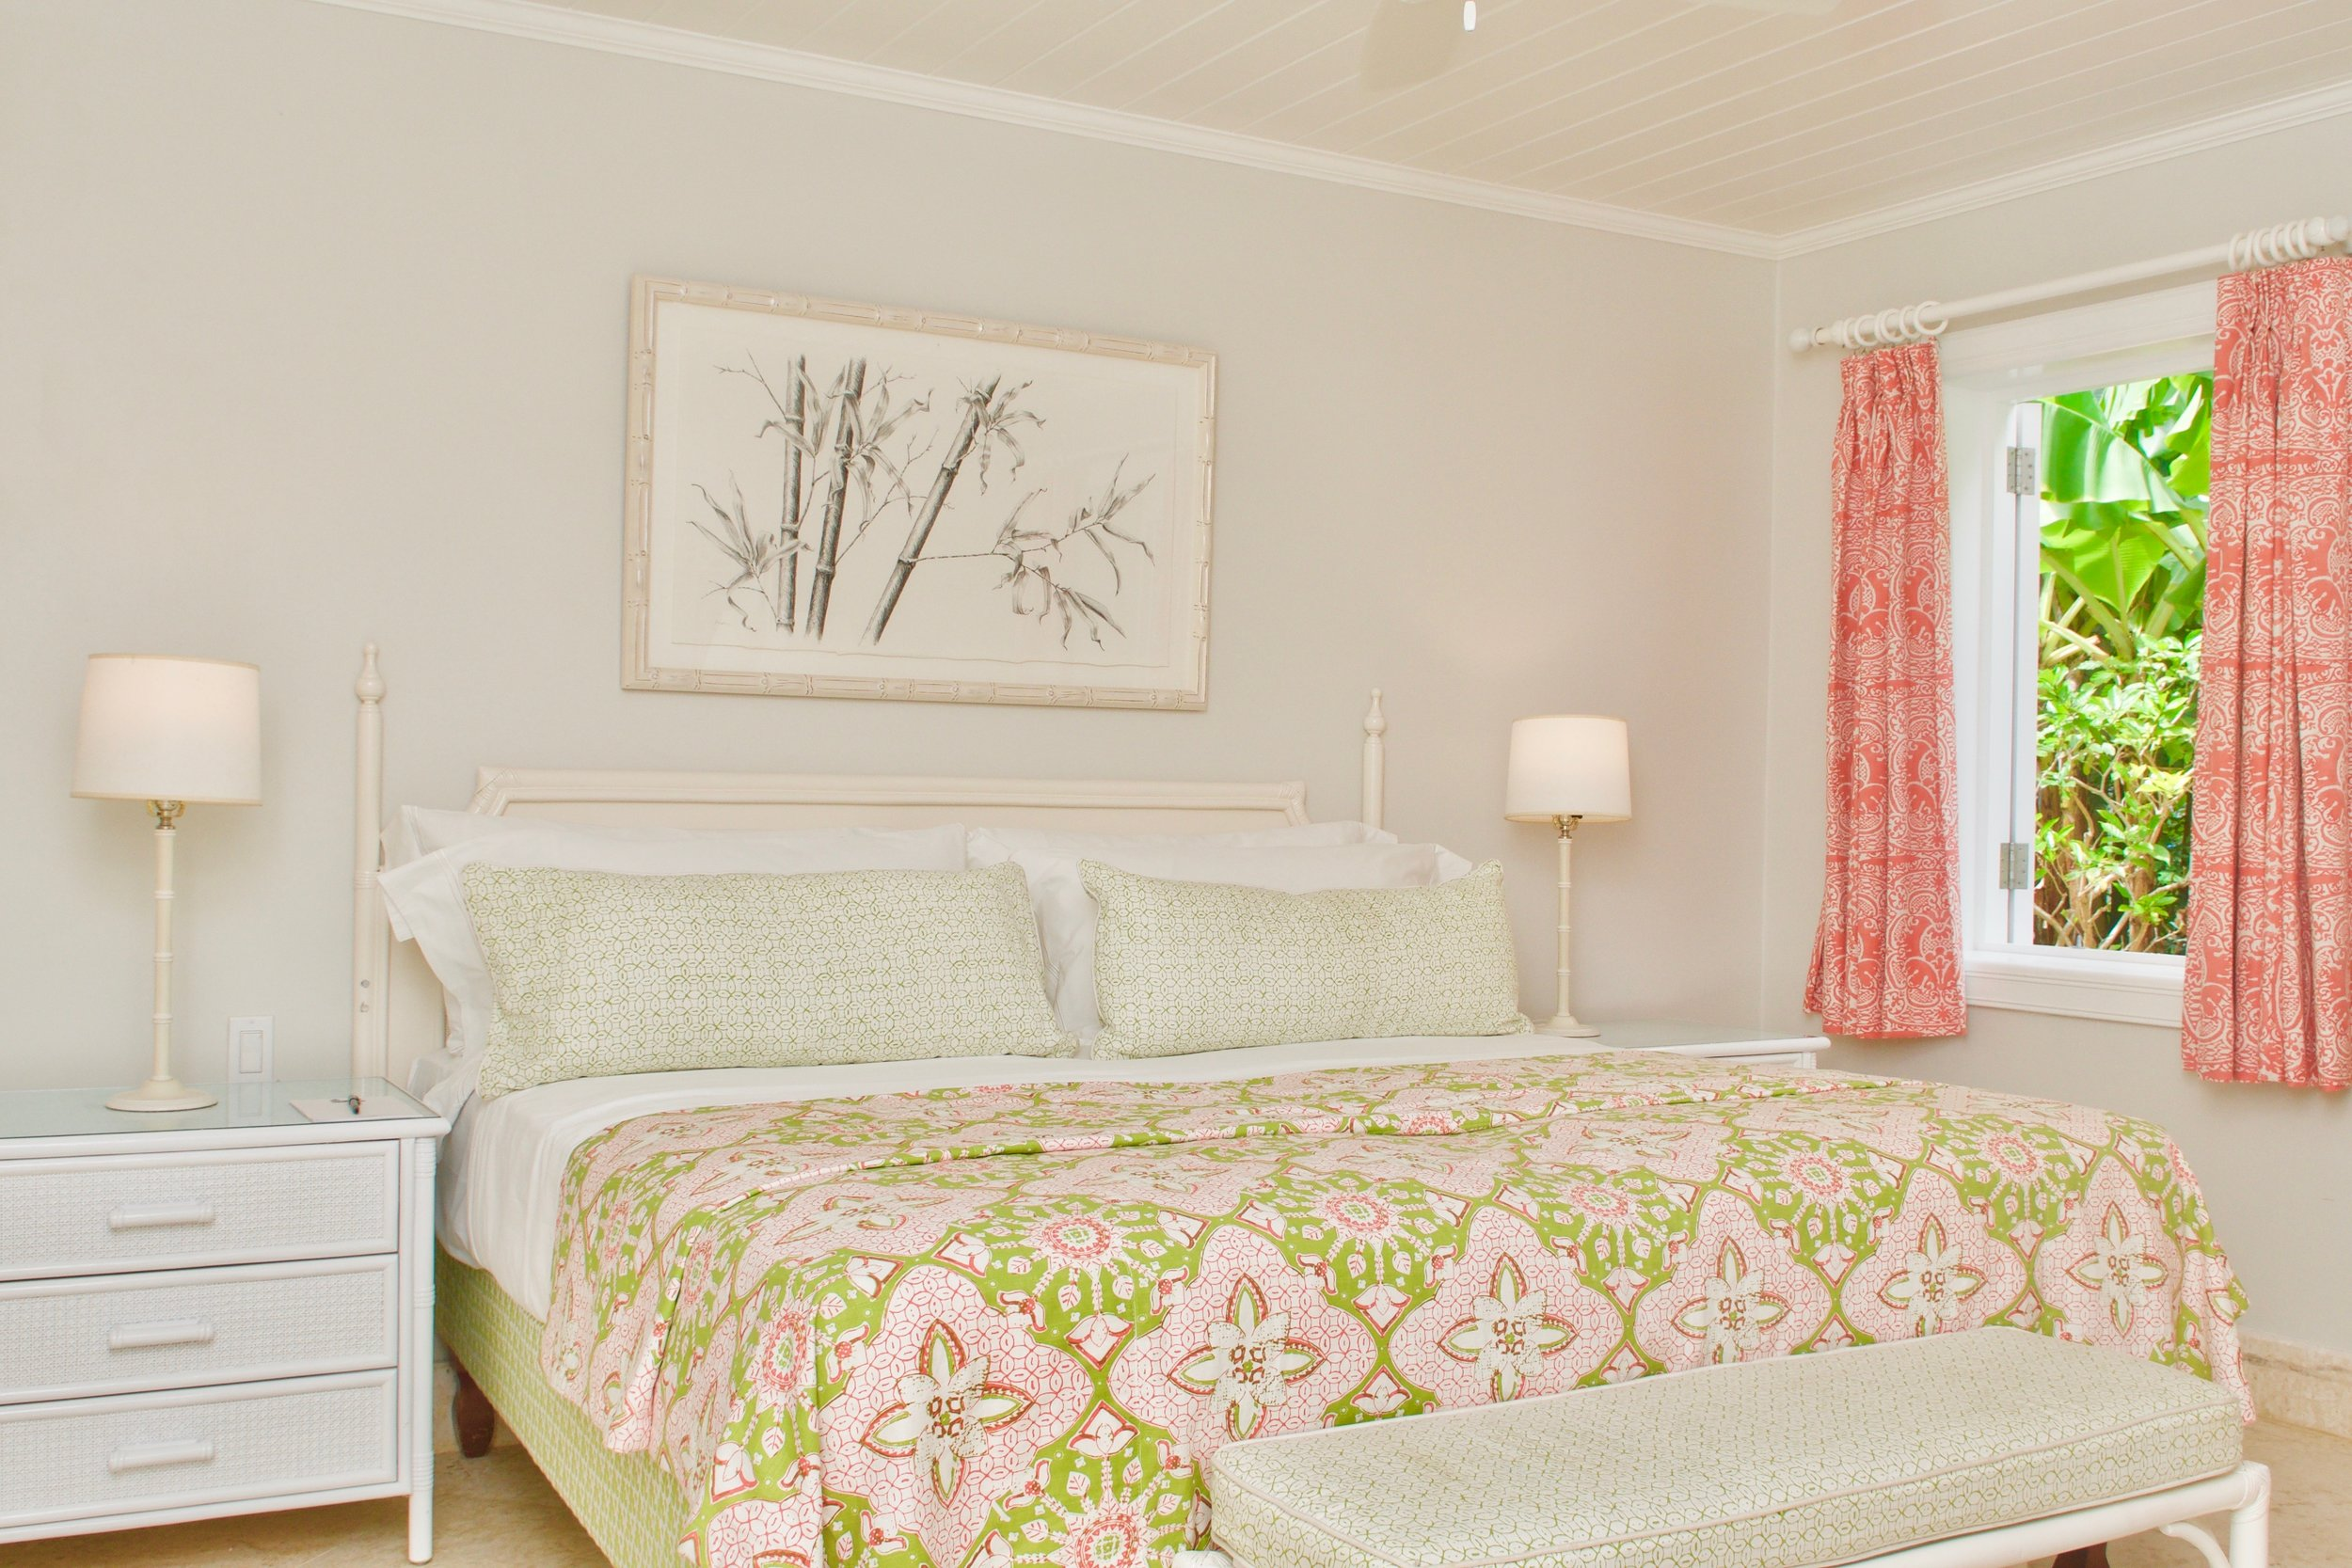 COBBLERS COVE OCEAN VIEW BEDROOM.jpg